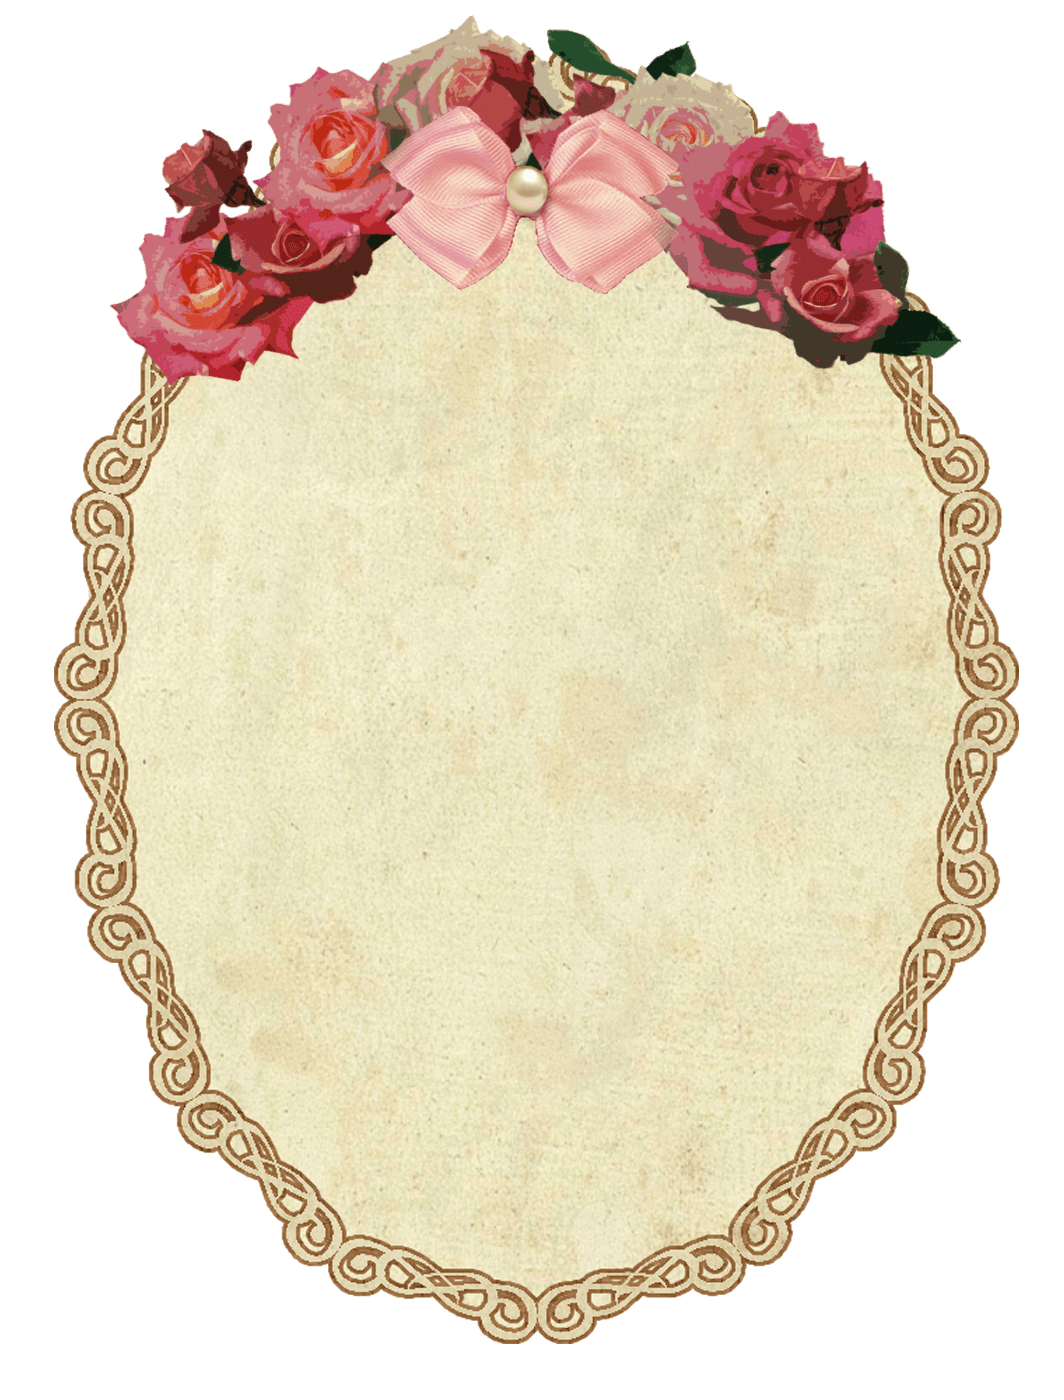 Vintage Oval Frame With Flowers